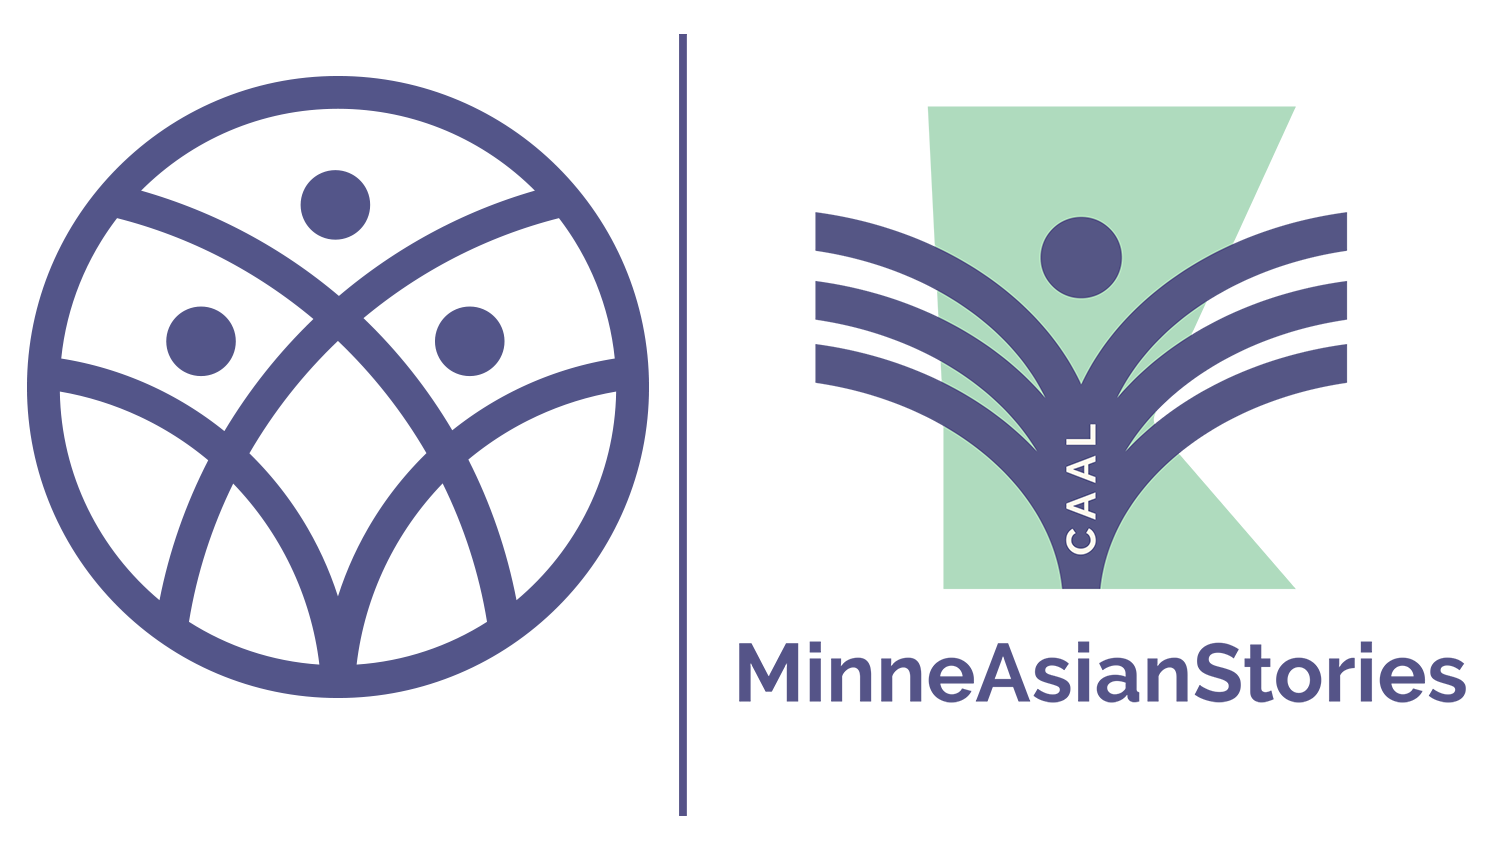 Two logos, one of a circle with three figures intersect, the other of MinneAsianStories